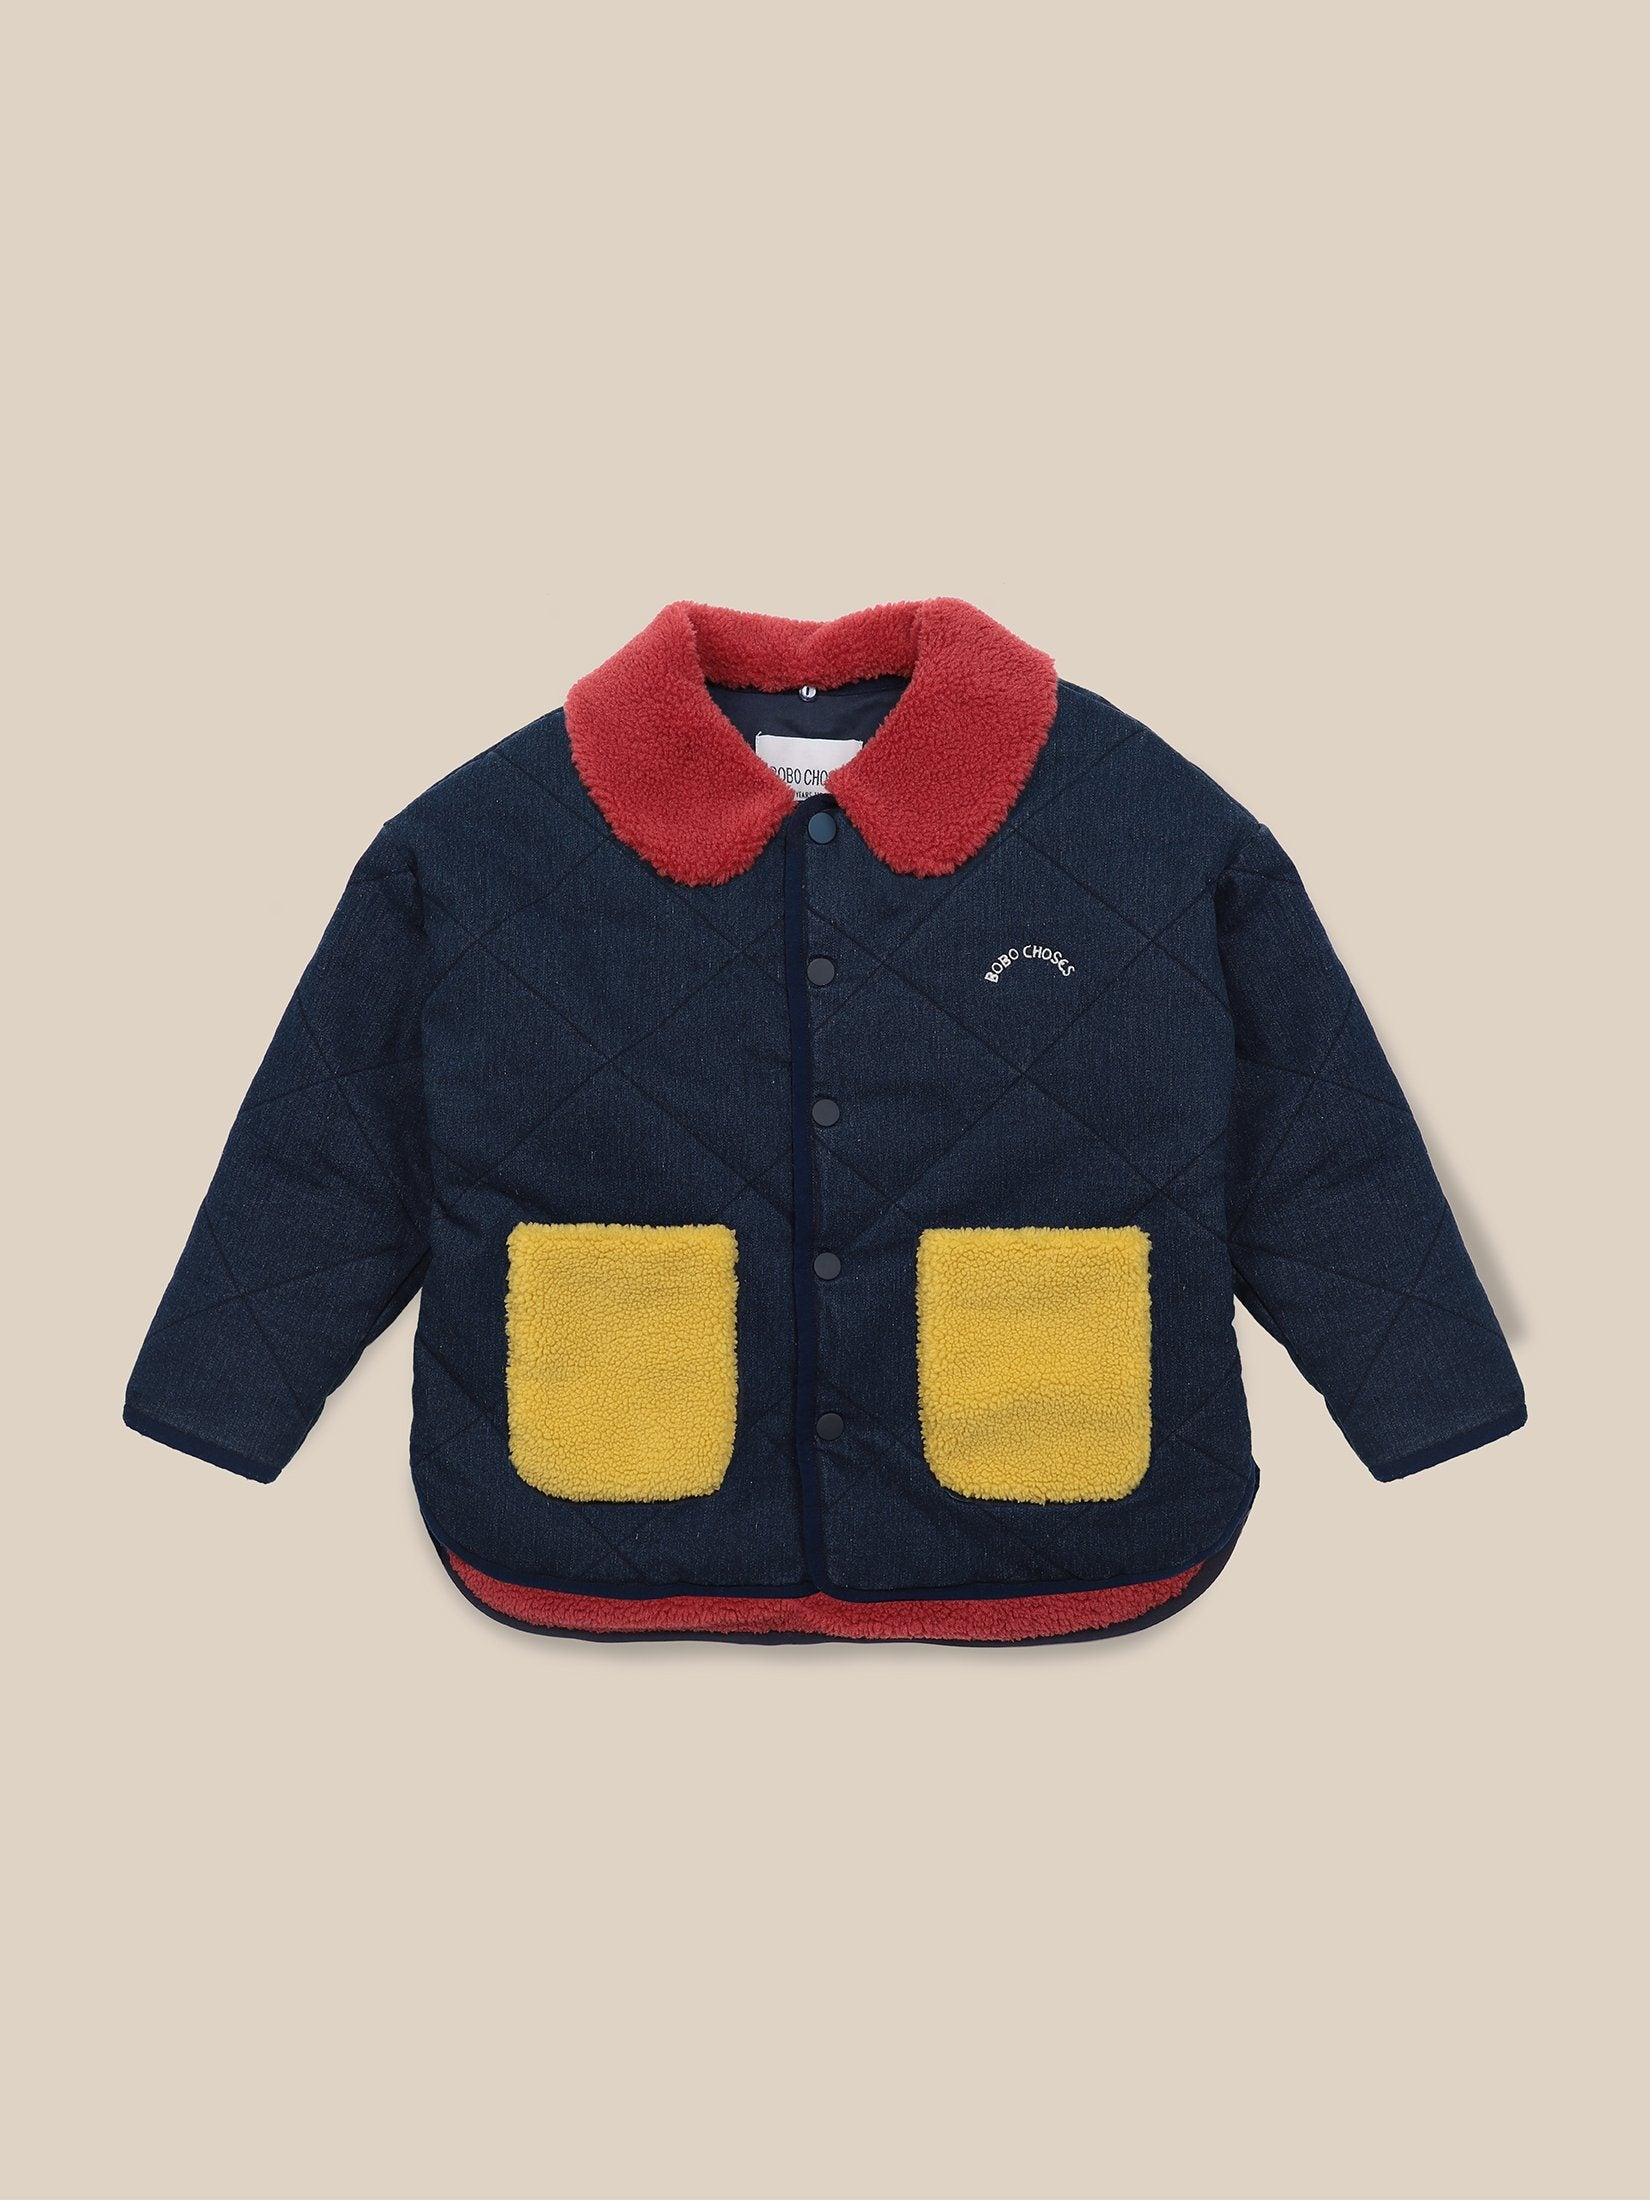 Bobo Choses Multicolor Quilted Jacket Grape Compote - Zirkuss